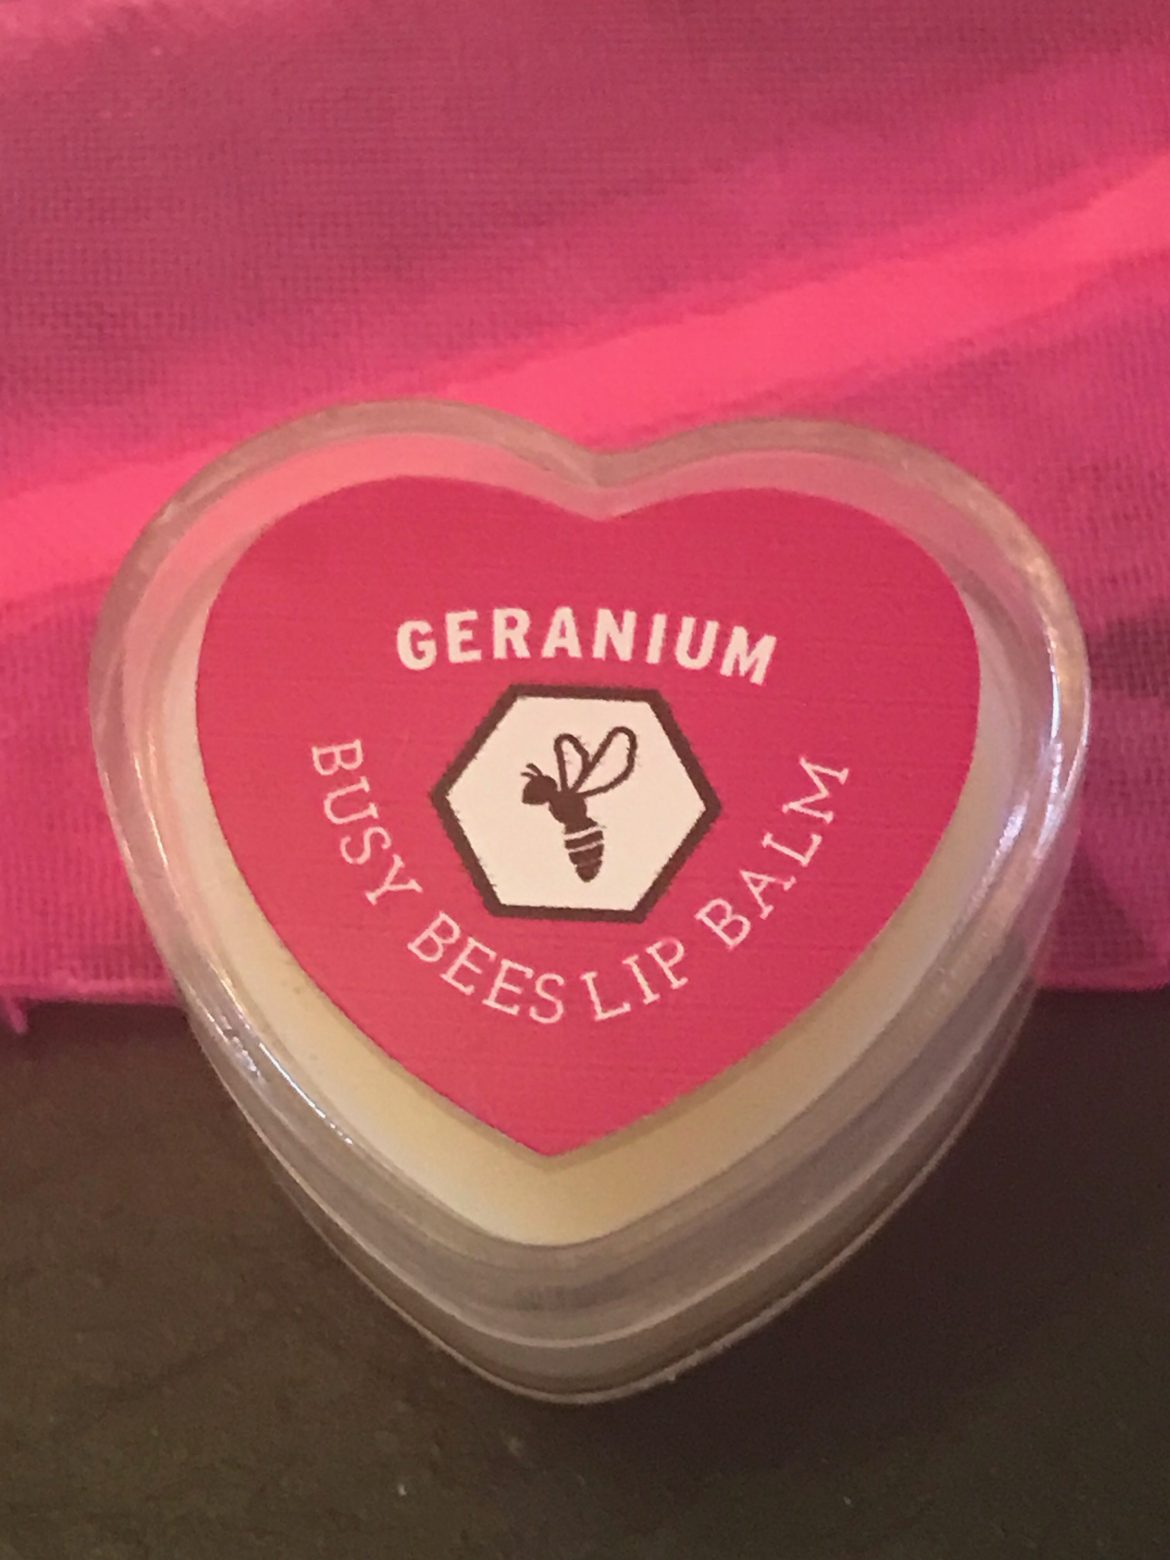 Geranium Lip Balm, Honey, Natural Beeswax Product